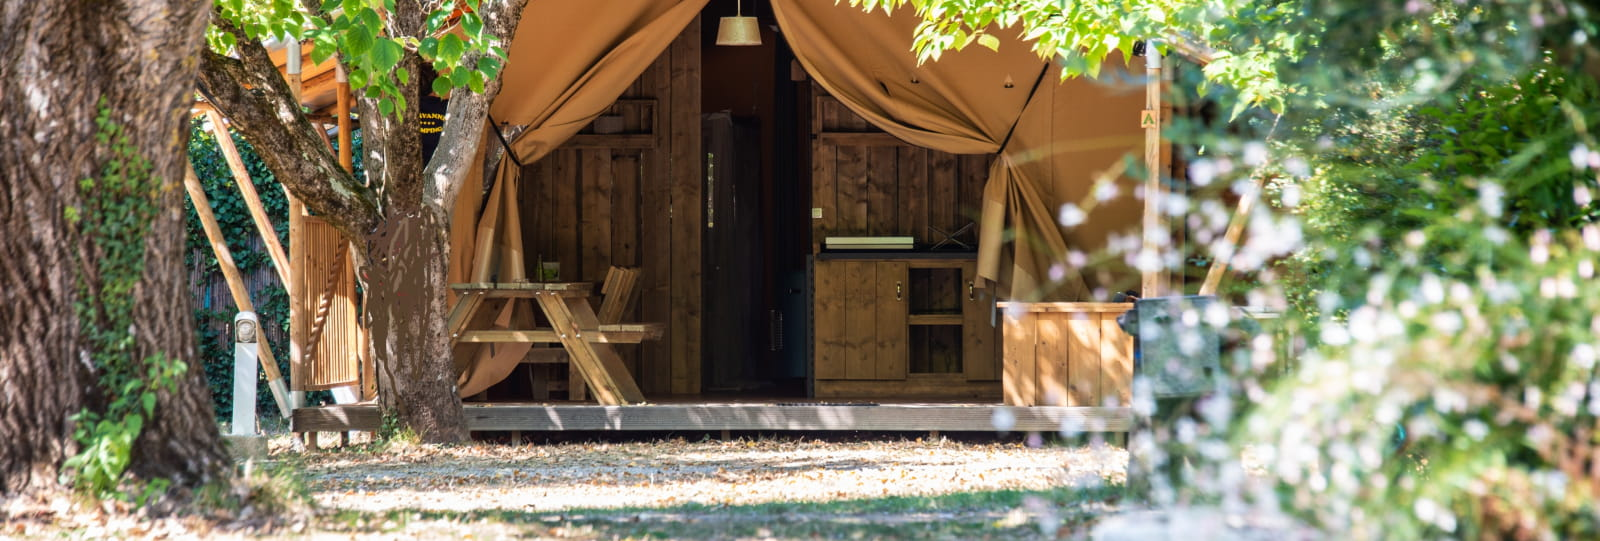 Lodges/Trappeurs/Roulottes Gervanne Camping